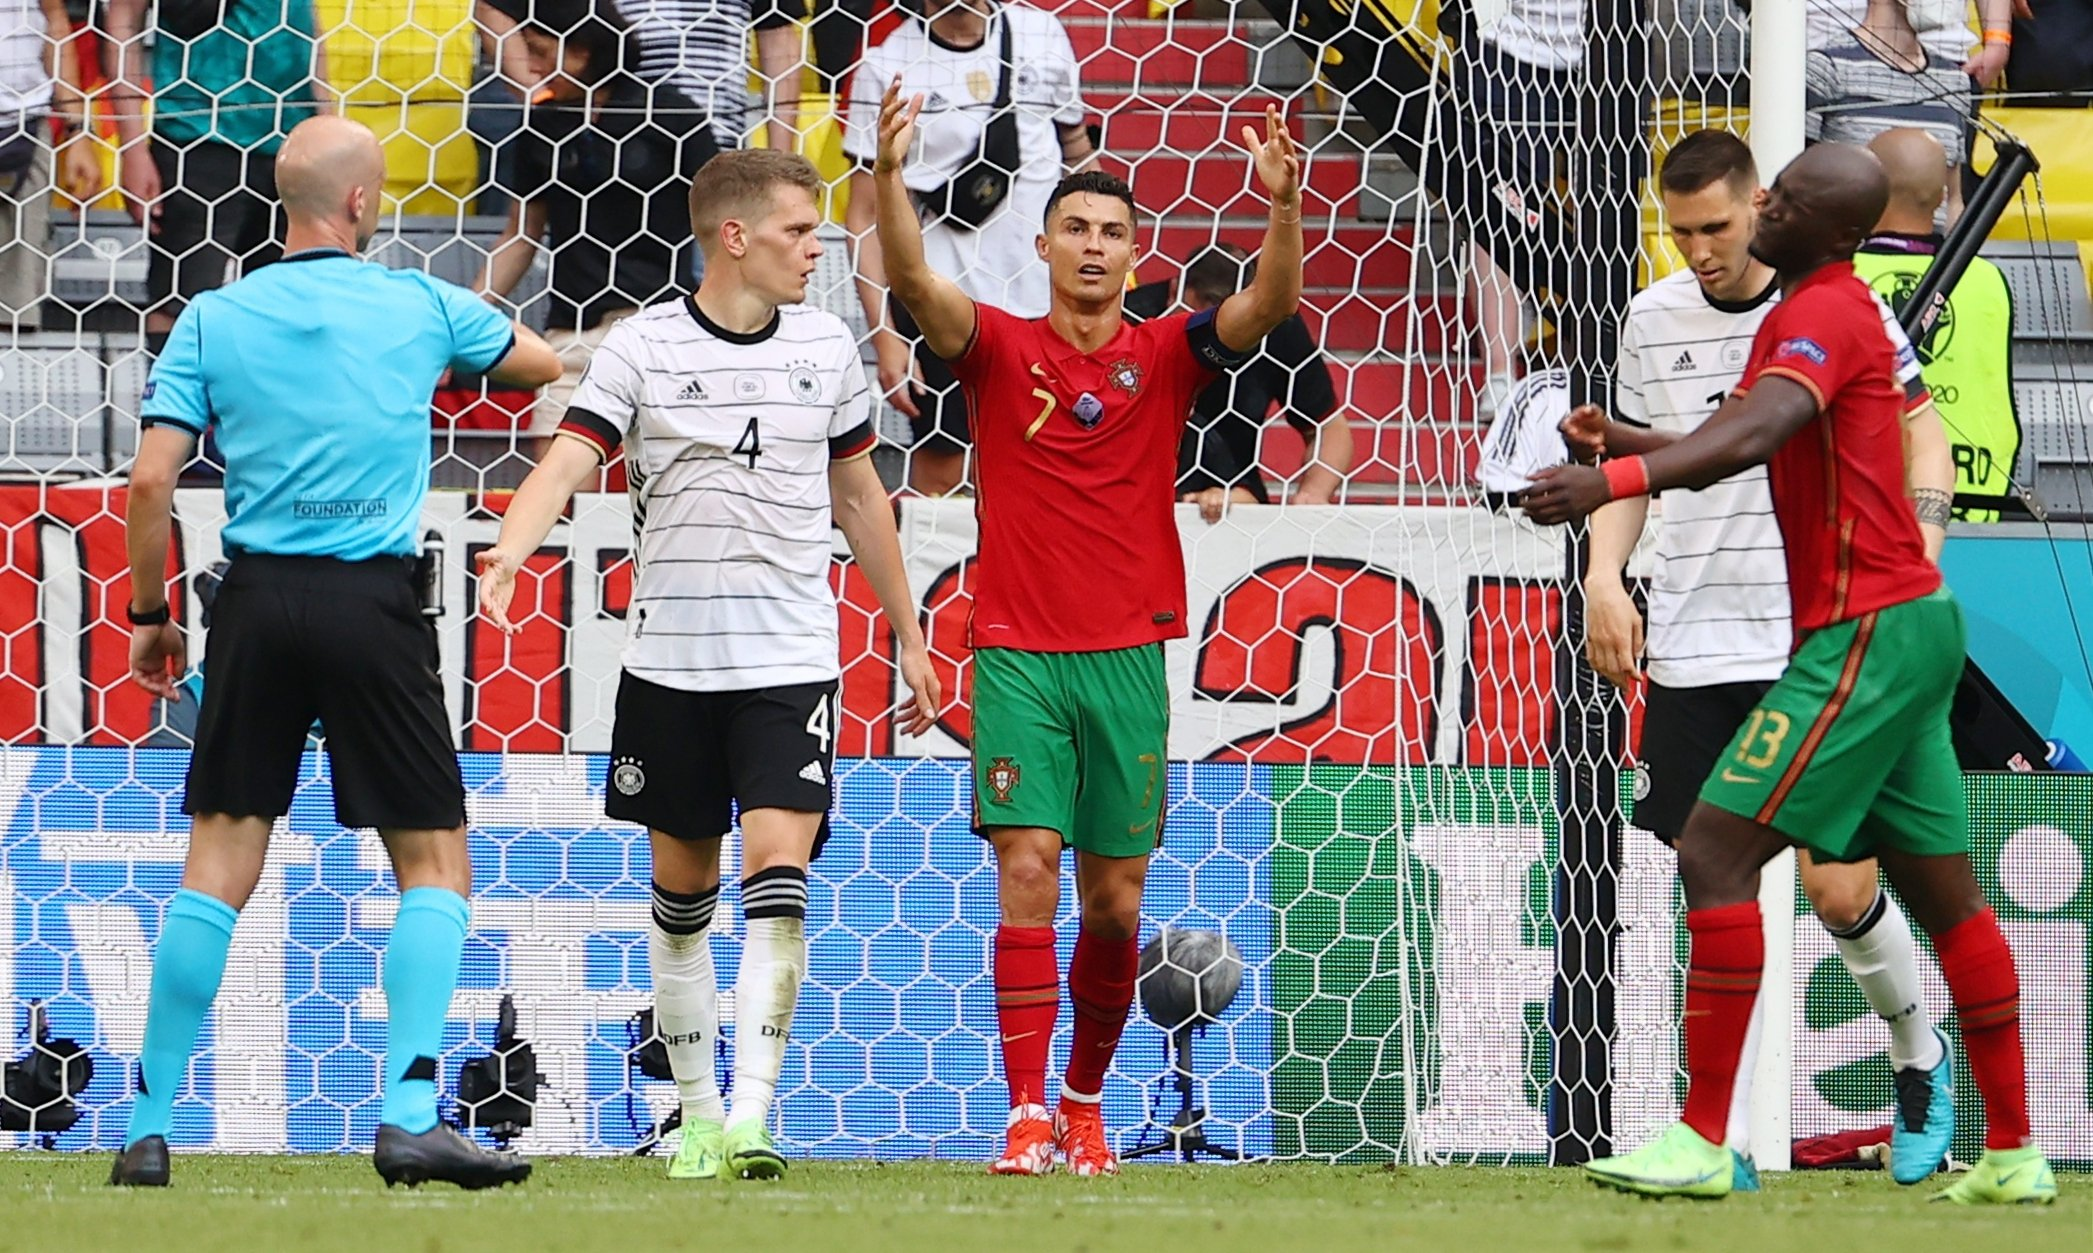 Portugal's own-goal galore gives Germany hope in Euro 2020 | Daily Sabah